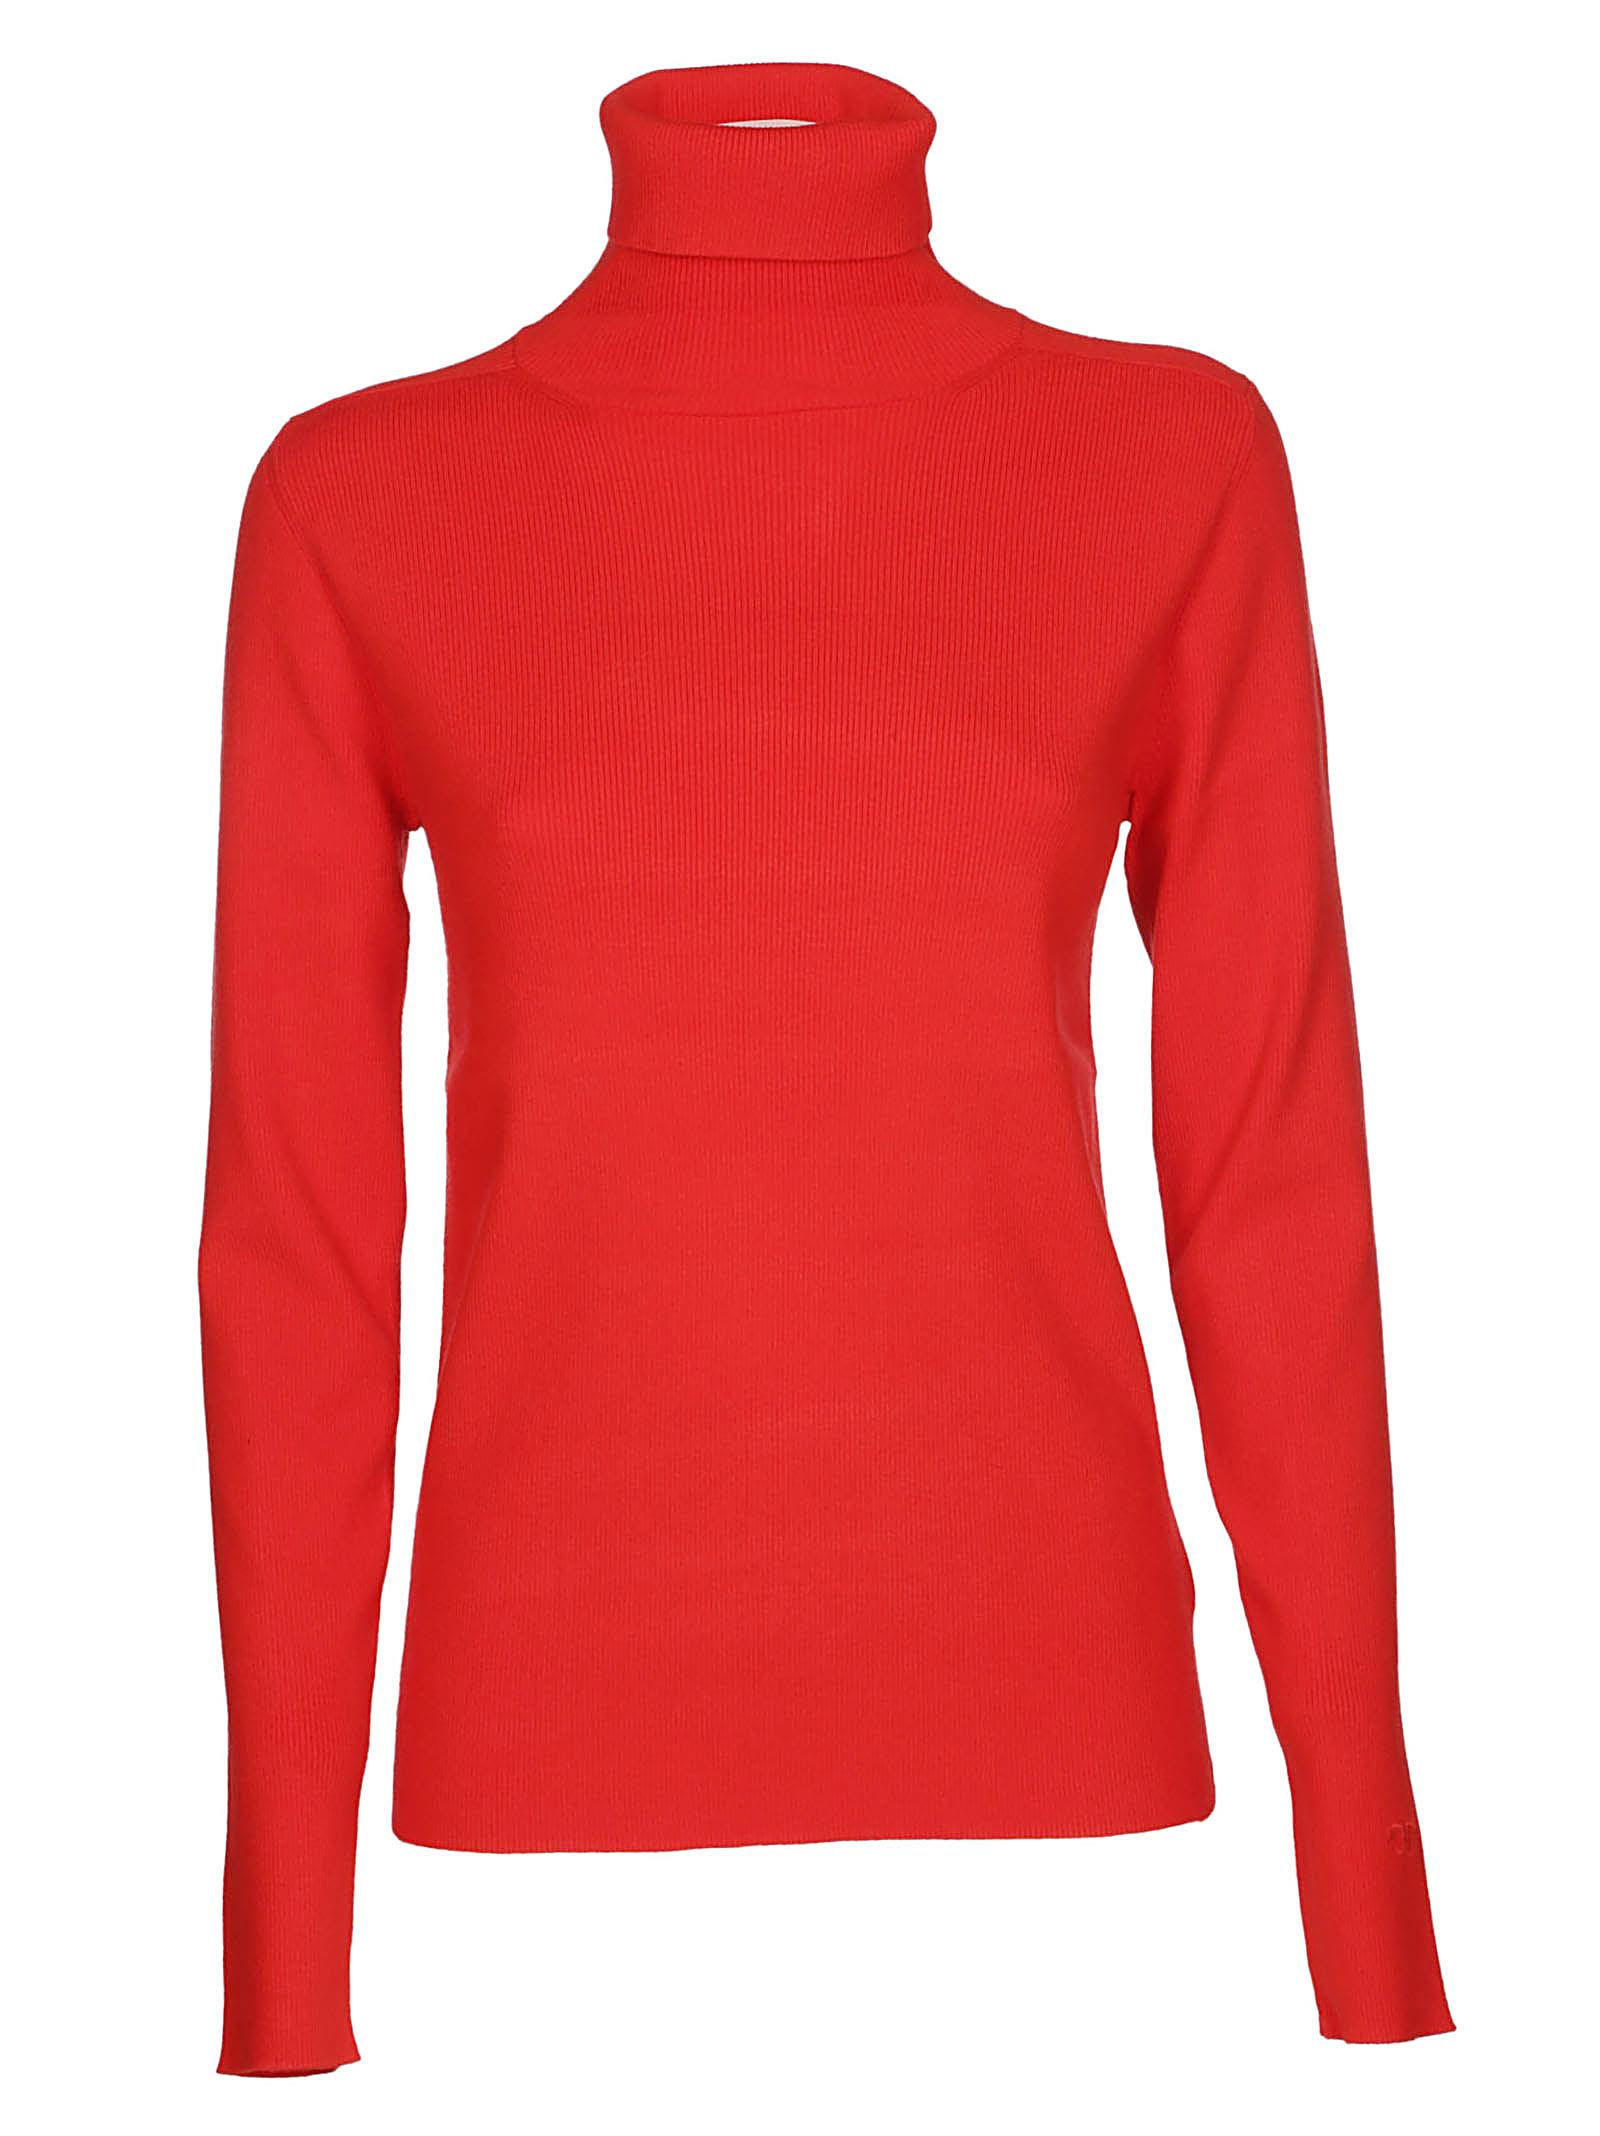 tory burch -  Turtle Neck Sweater